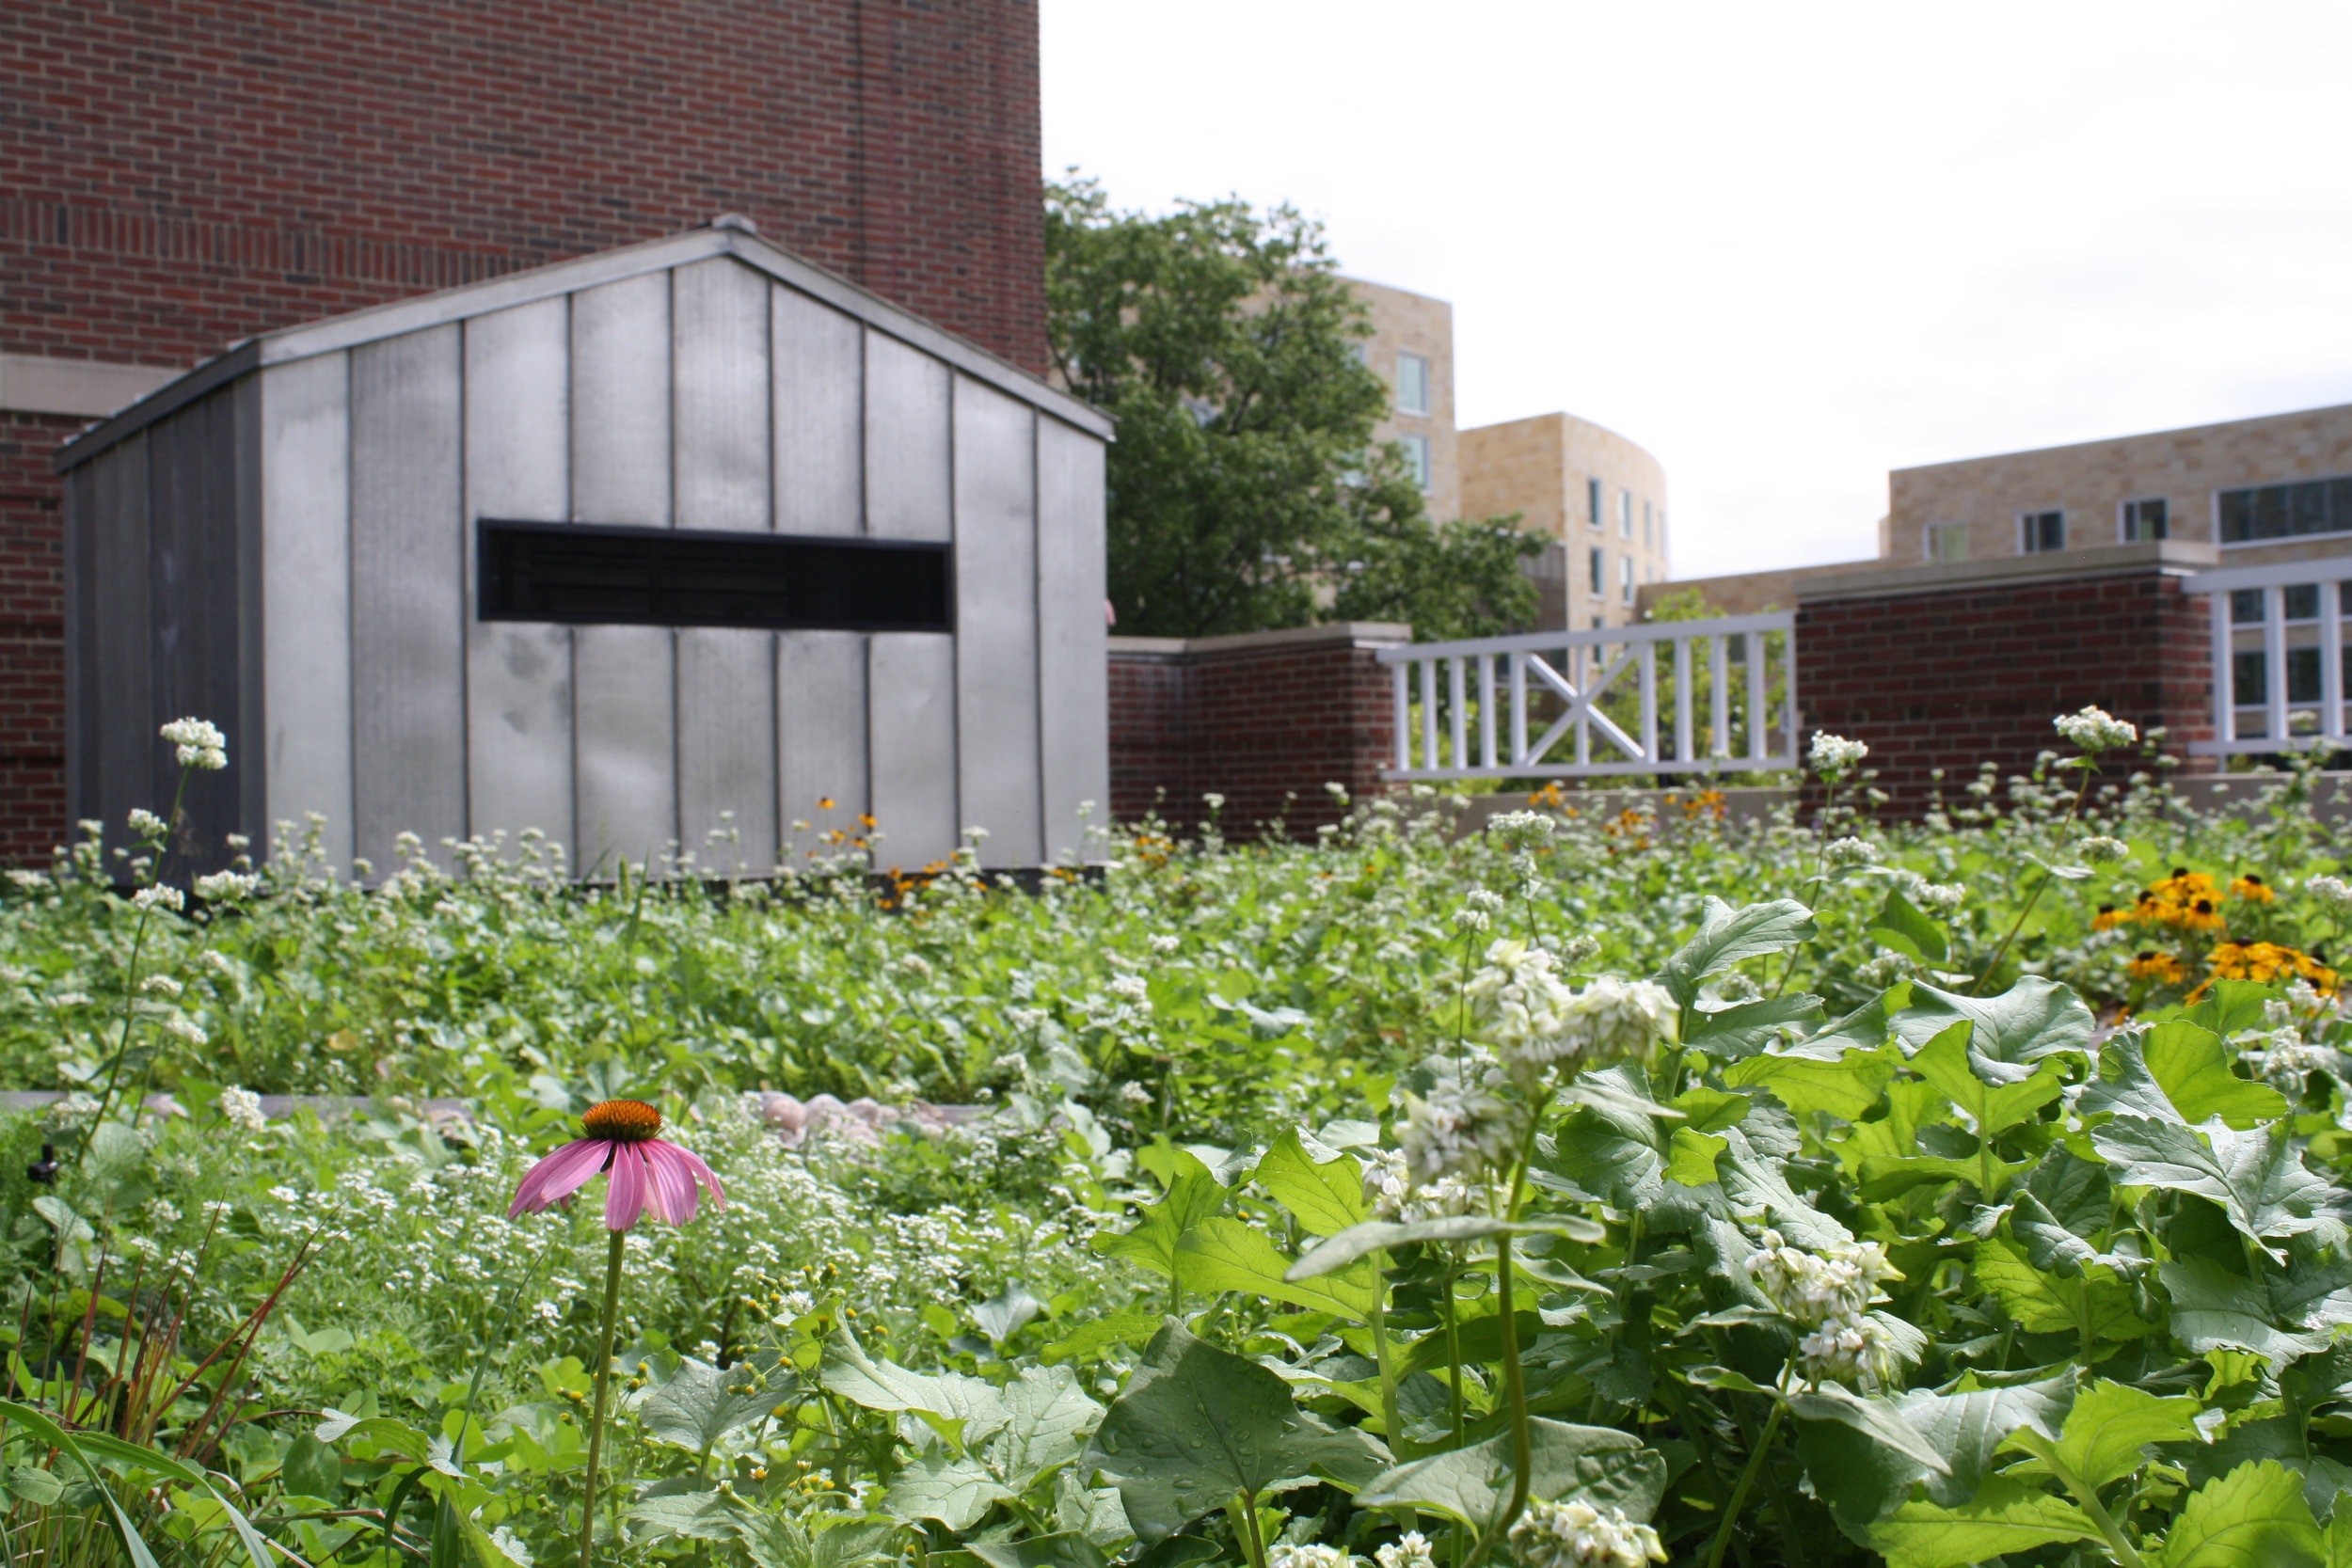 P12_Extensive_Institional_McArthurMcCollumBuildingRooftopMeadow-2_Credit-RecoverGreenRoofs.jpg